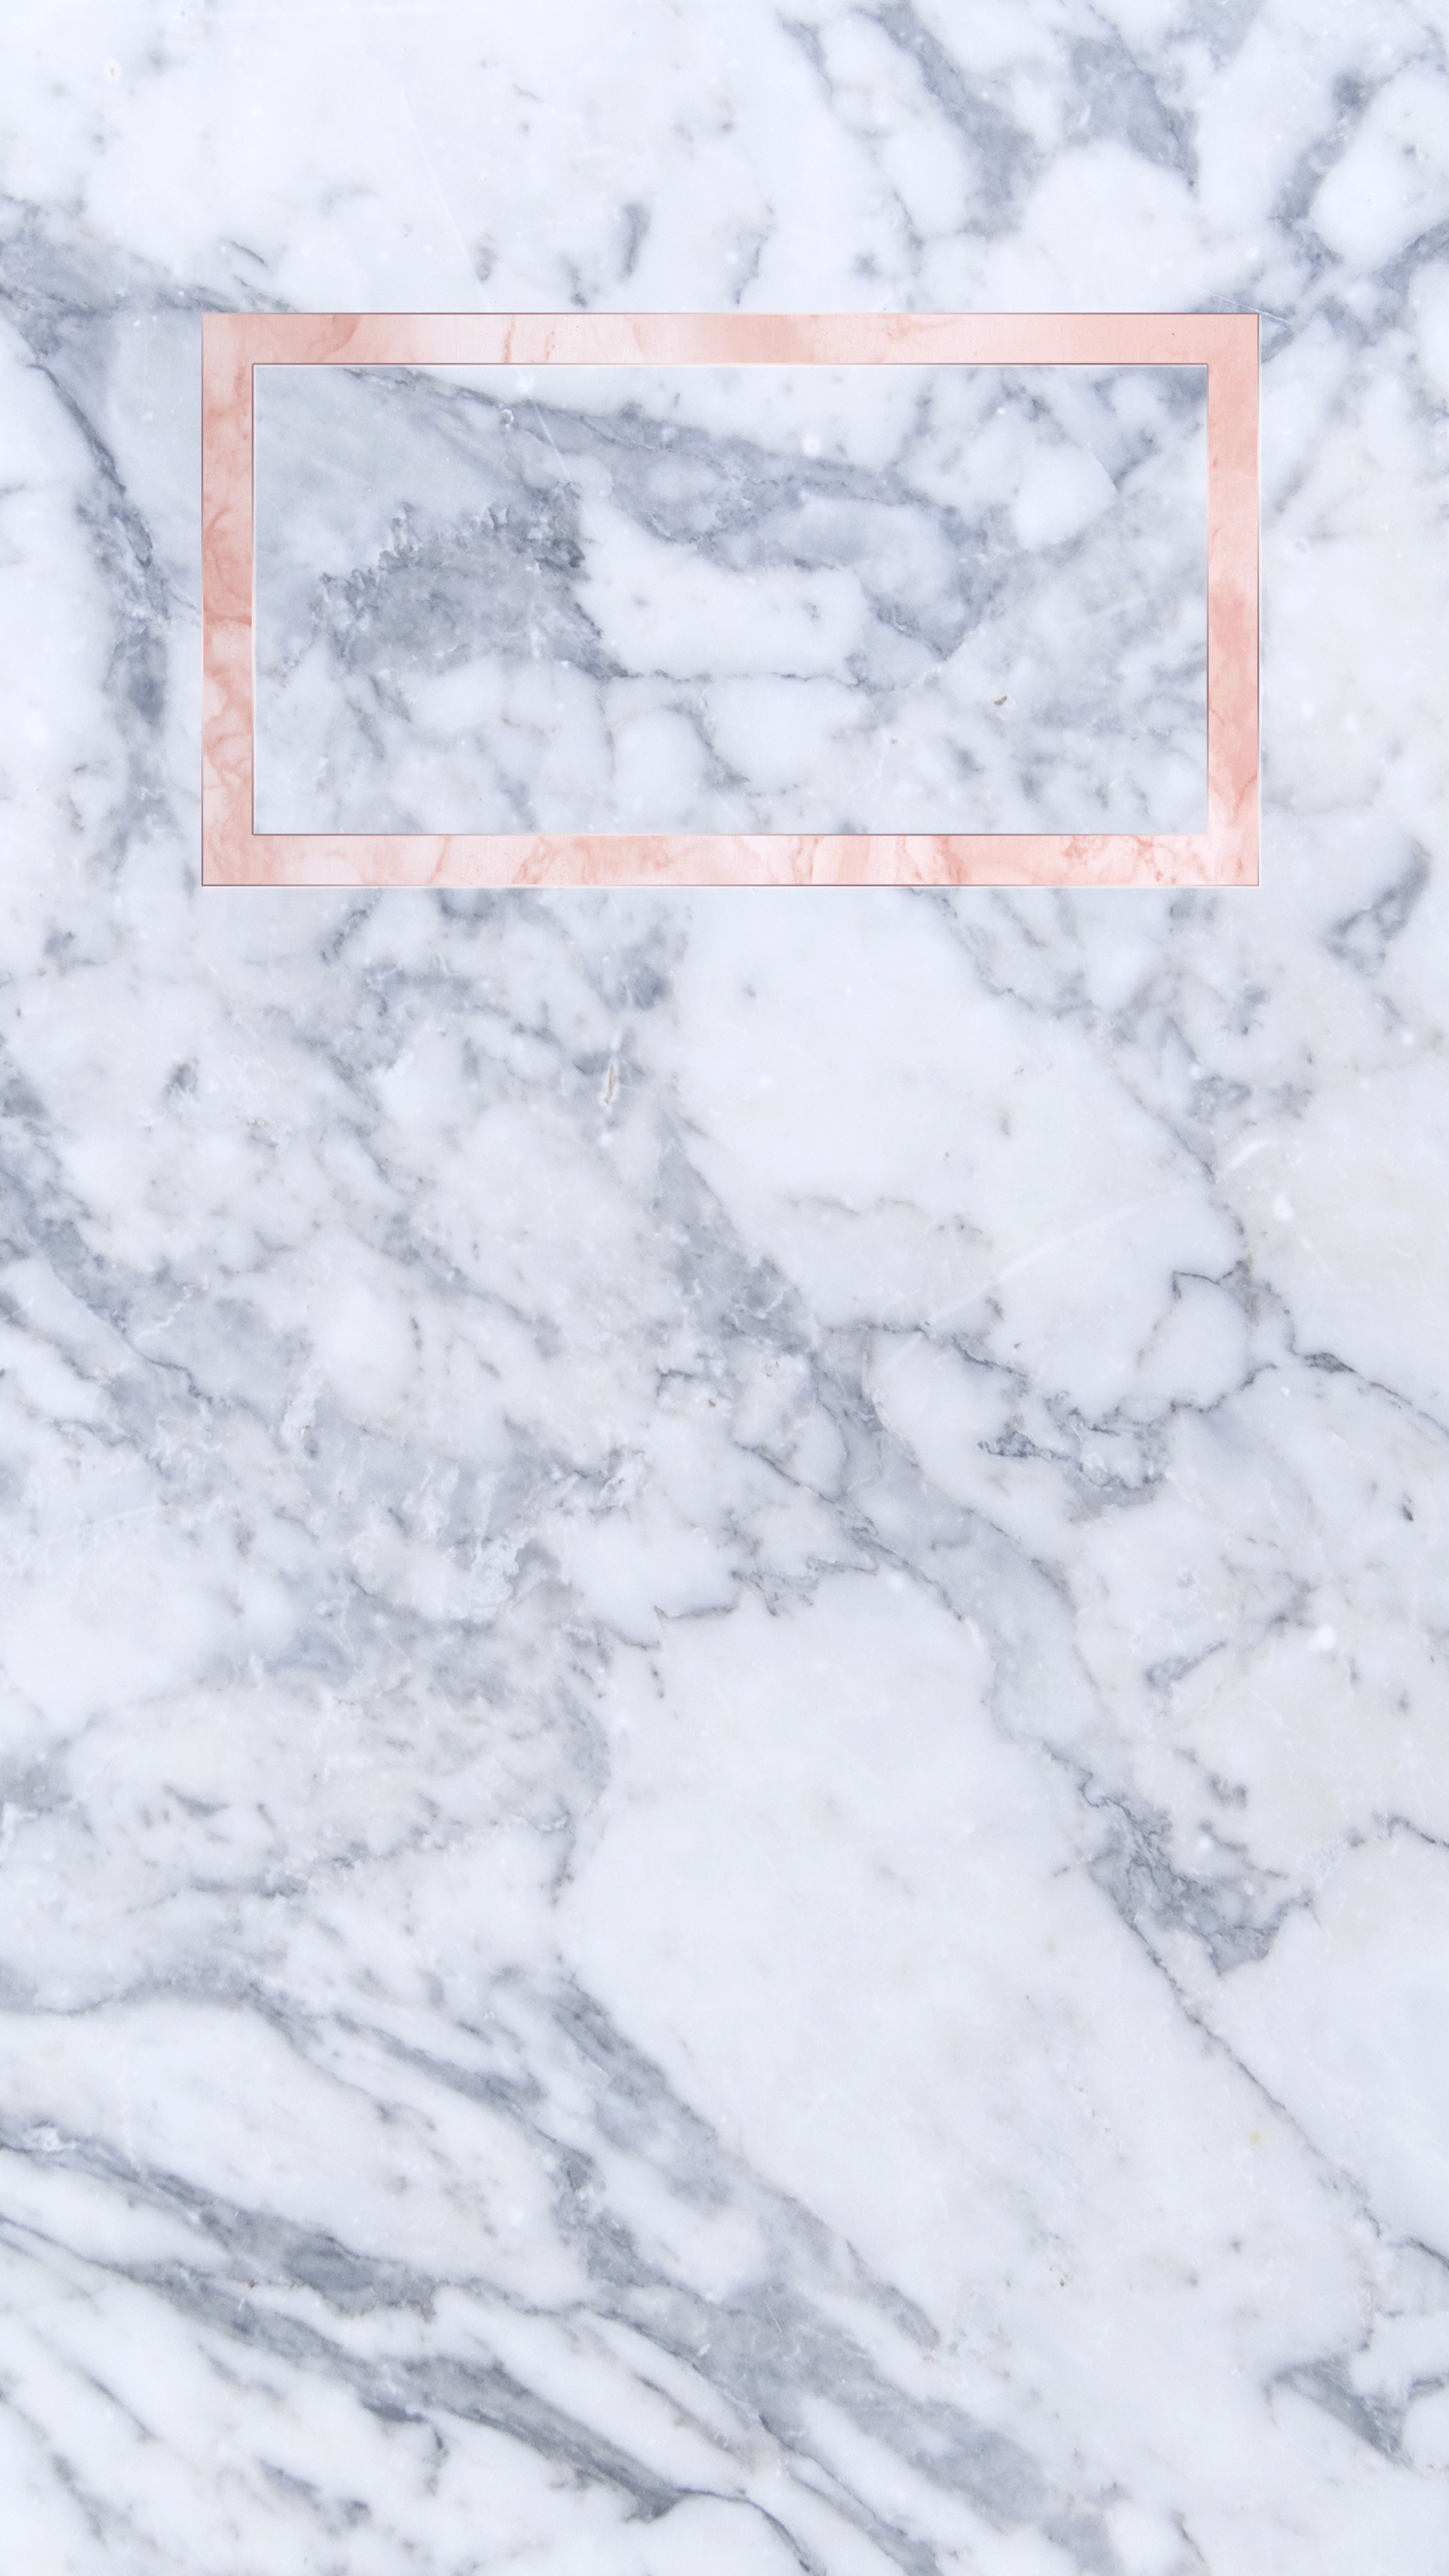 100% Quality Marble HD Wallpapers #AZY49AZY, 100% Quality HD Wallpapers